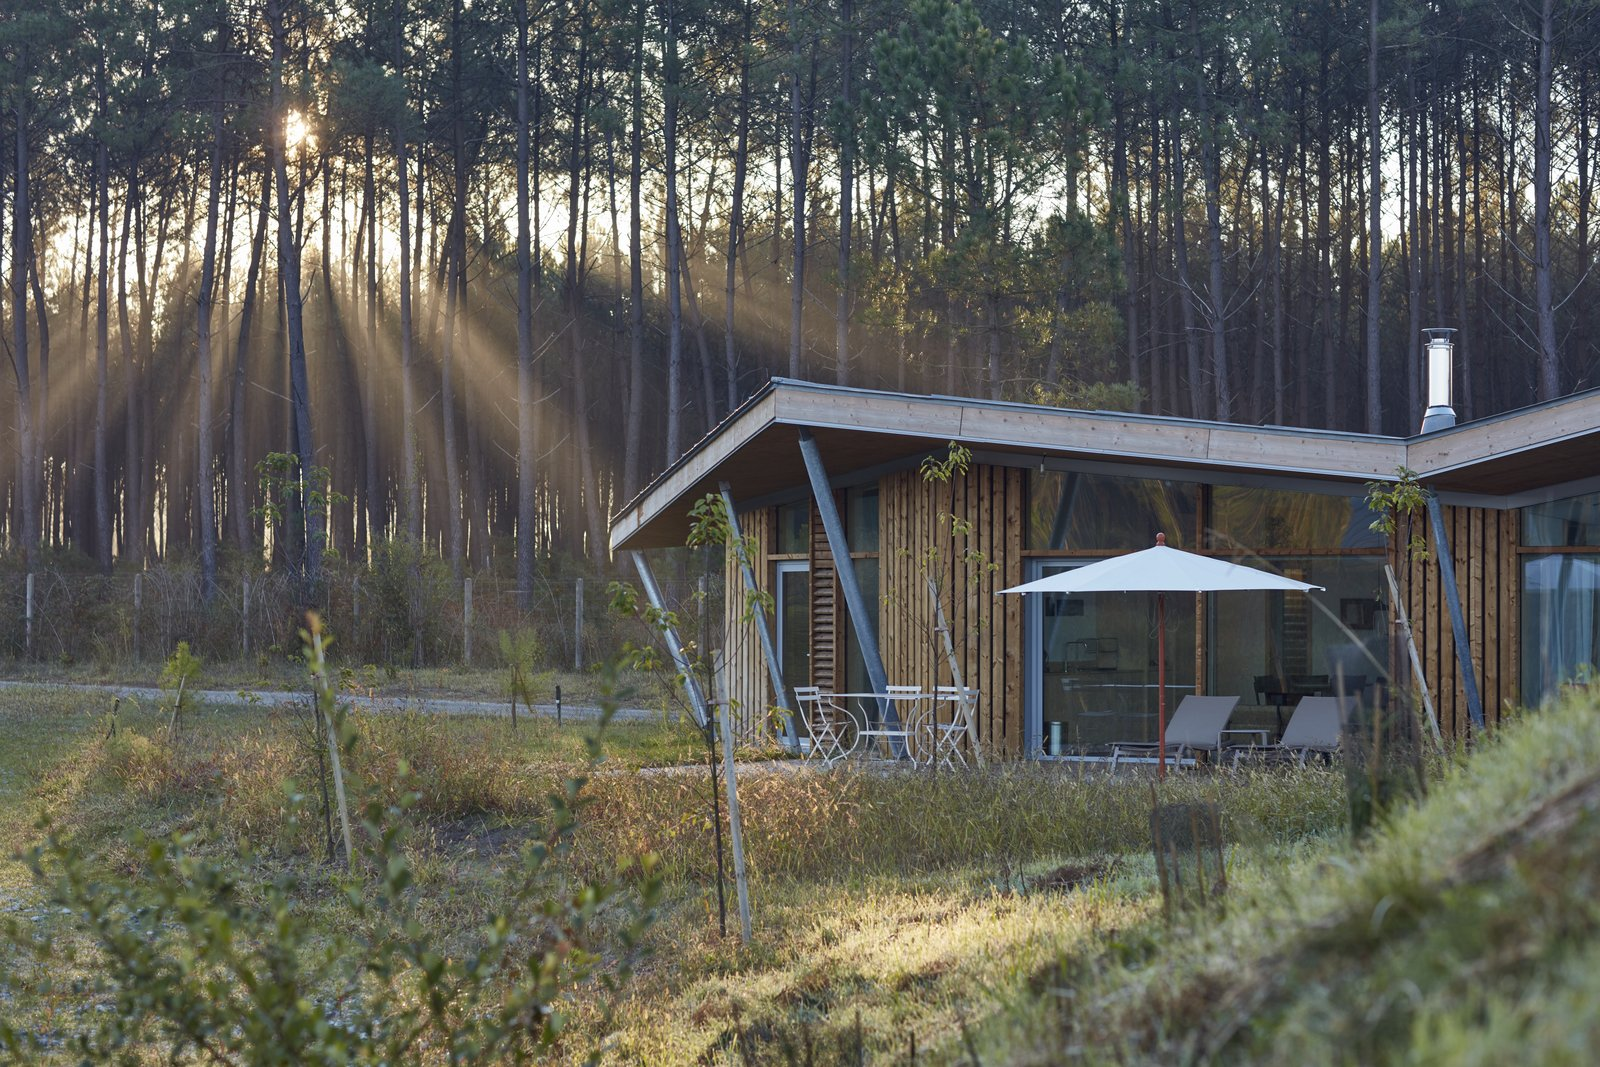 Maritime pines from the Landes Forest compose the exterior wood cladding of each hut and purposefully form the incredible views outward to the lake. The wood frame segues into an angular, butterfly roof that collects and directs rainwater back into the lake. Furthermore, it provides shading where full-height windows open into the living space. By orienting each hut in the same direction, the architects create a sense of isolation within the wood enclosure.